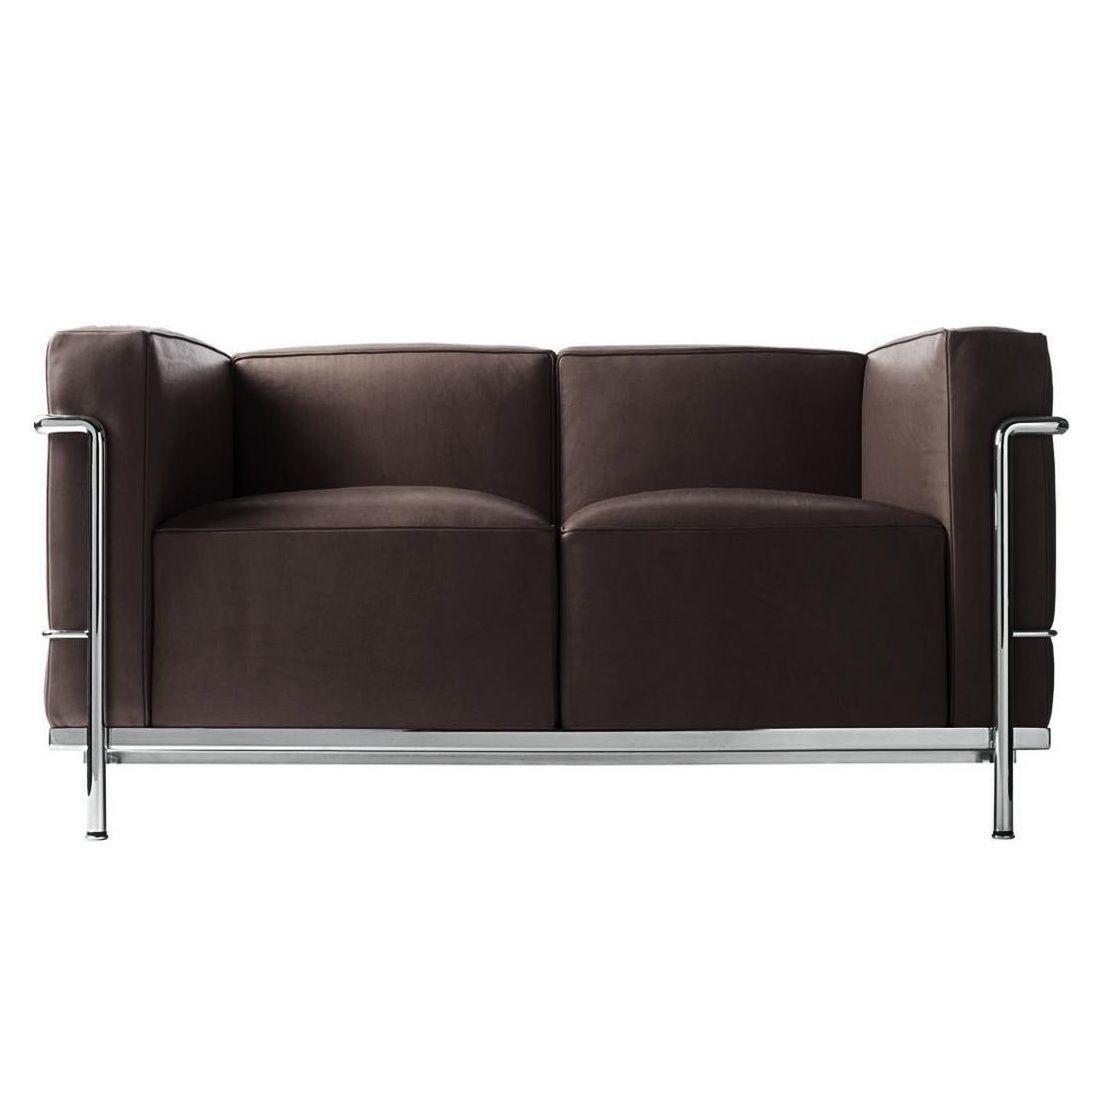 Le Corbusier Lc2 Sofa Cassina Cassina Sofas Seating Furniture Furniture